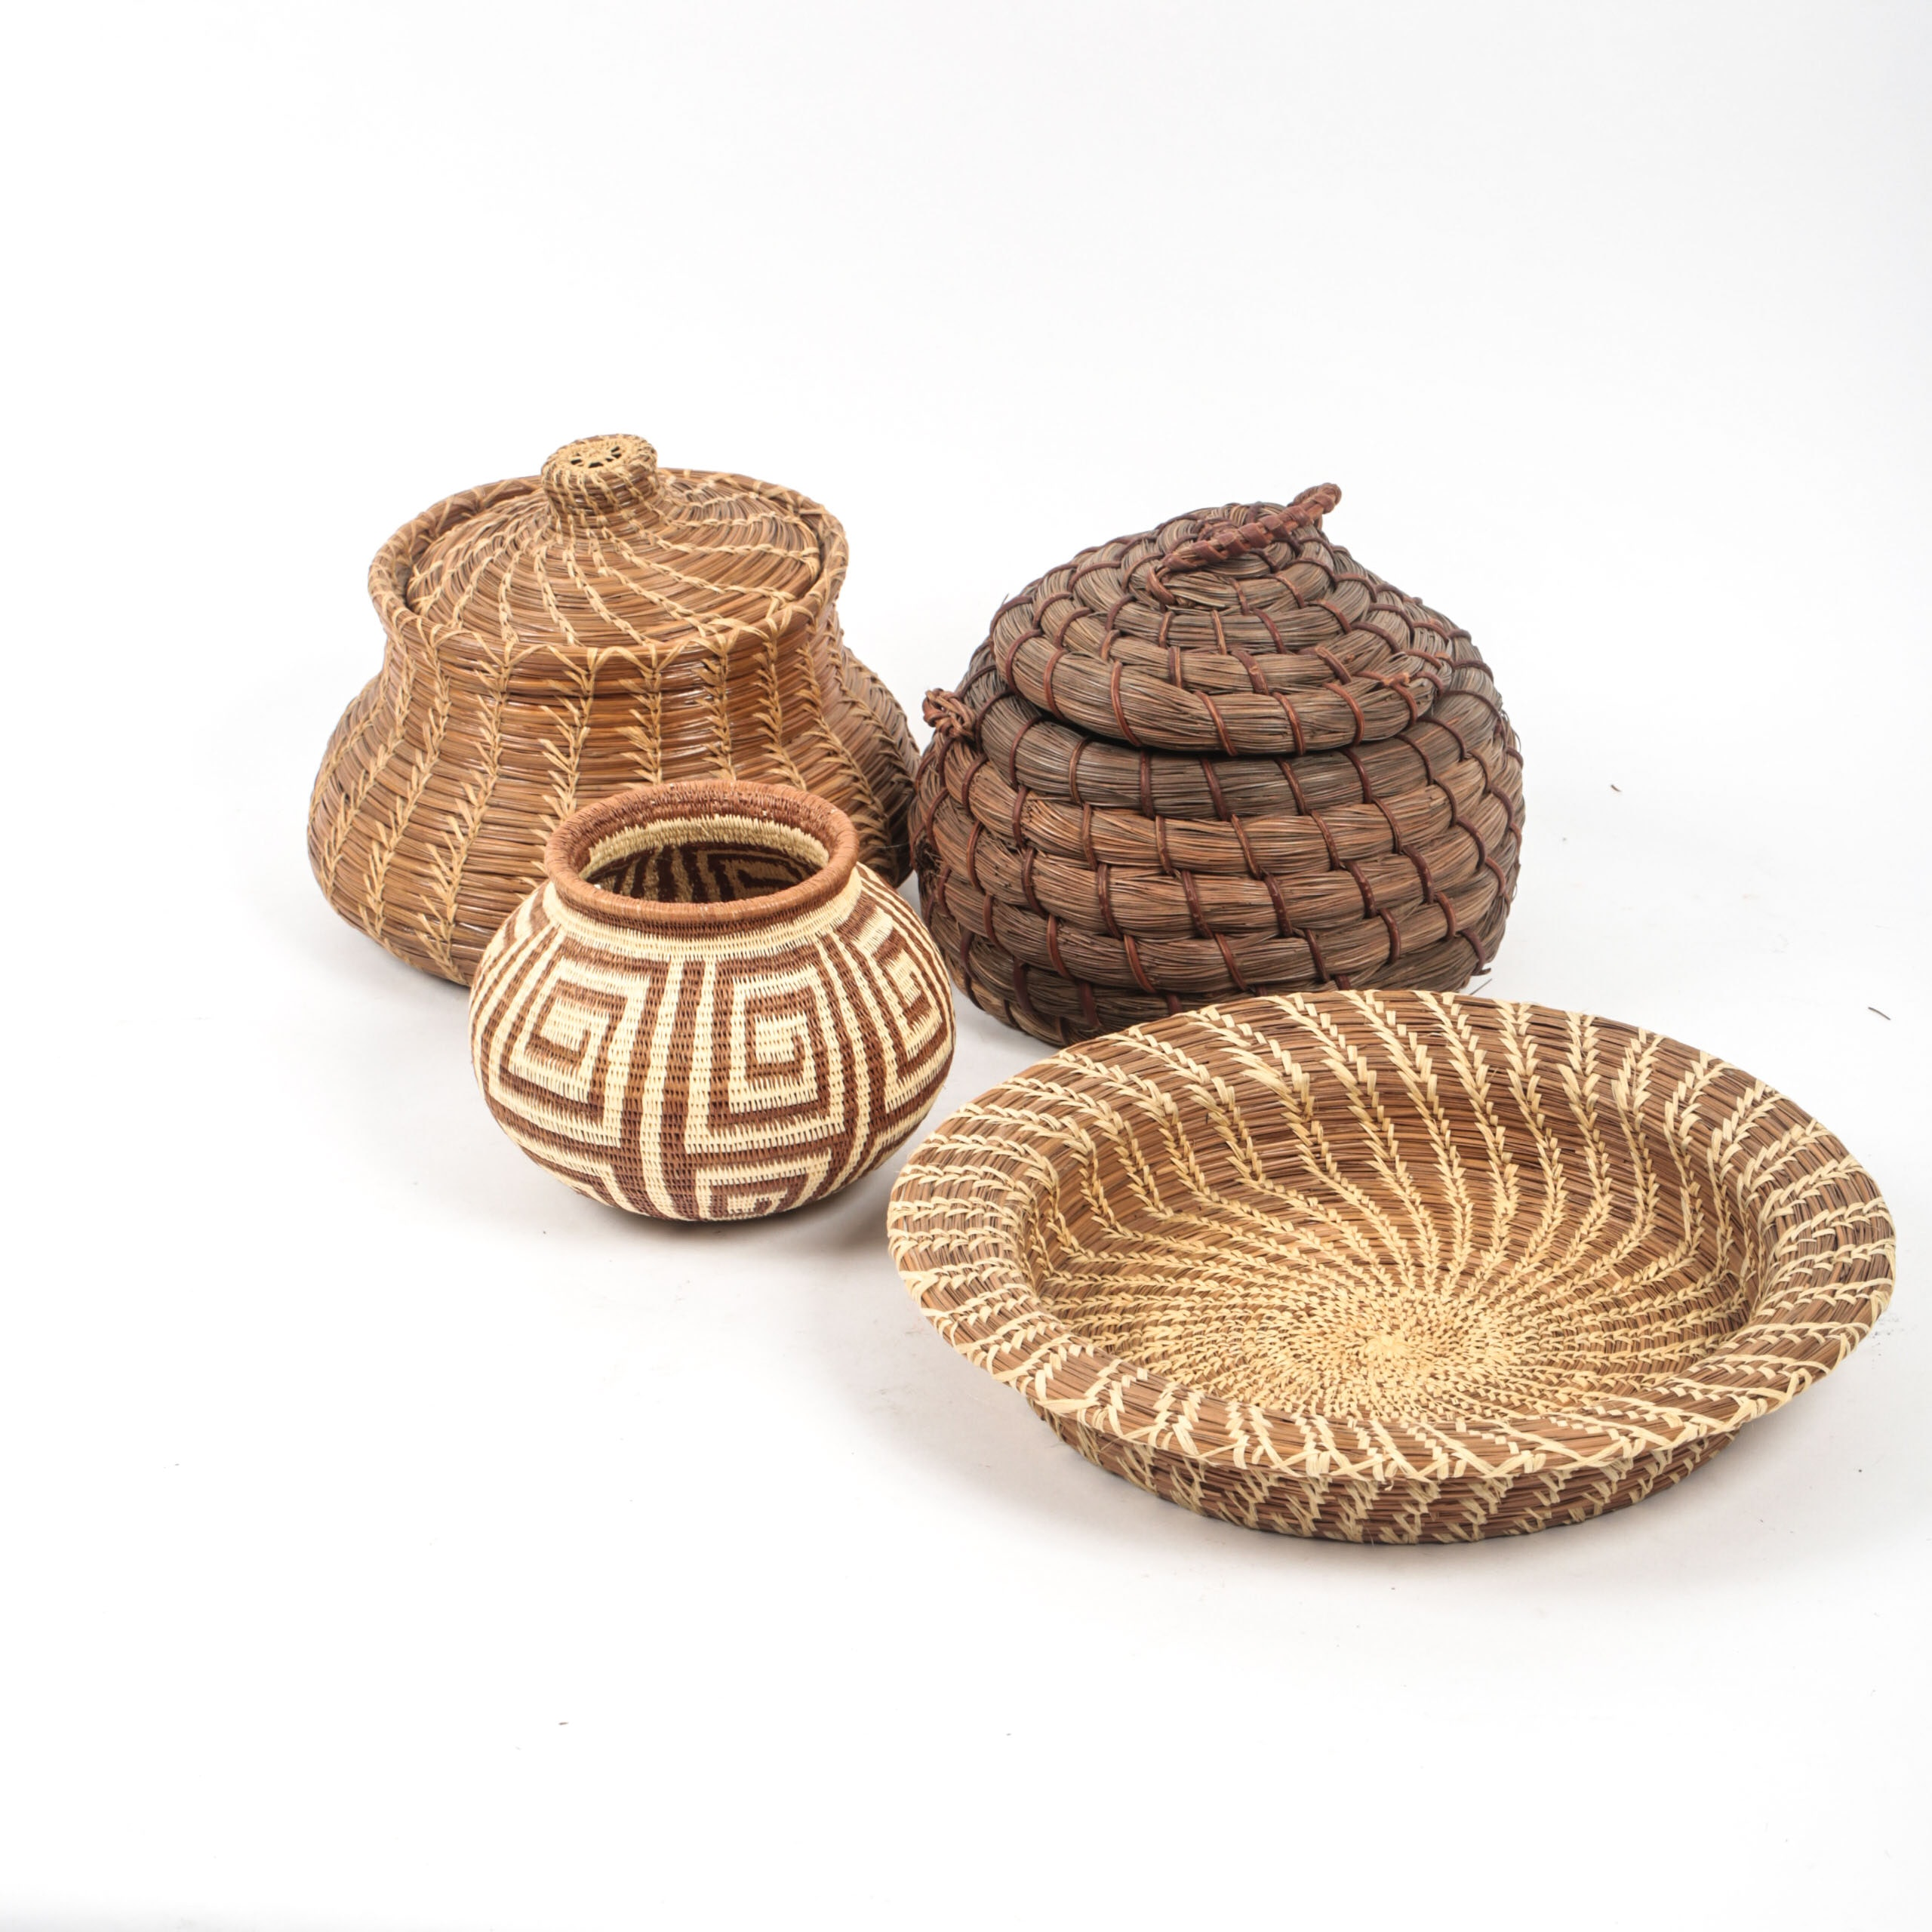 Hand Woven Darién Rainforest Baskets Made by Wounaan and Emberá Natives